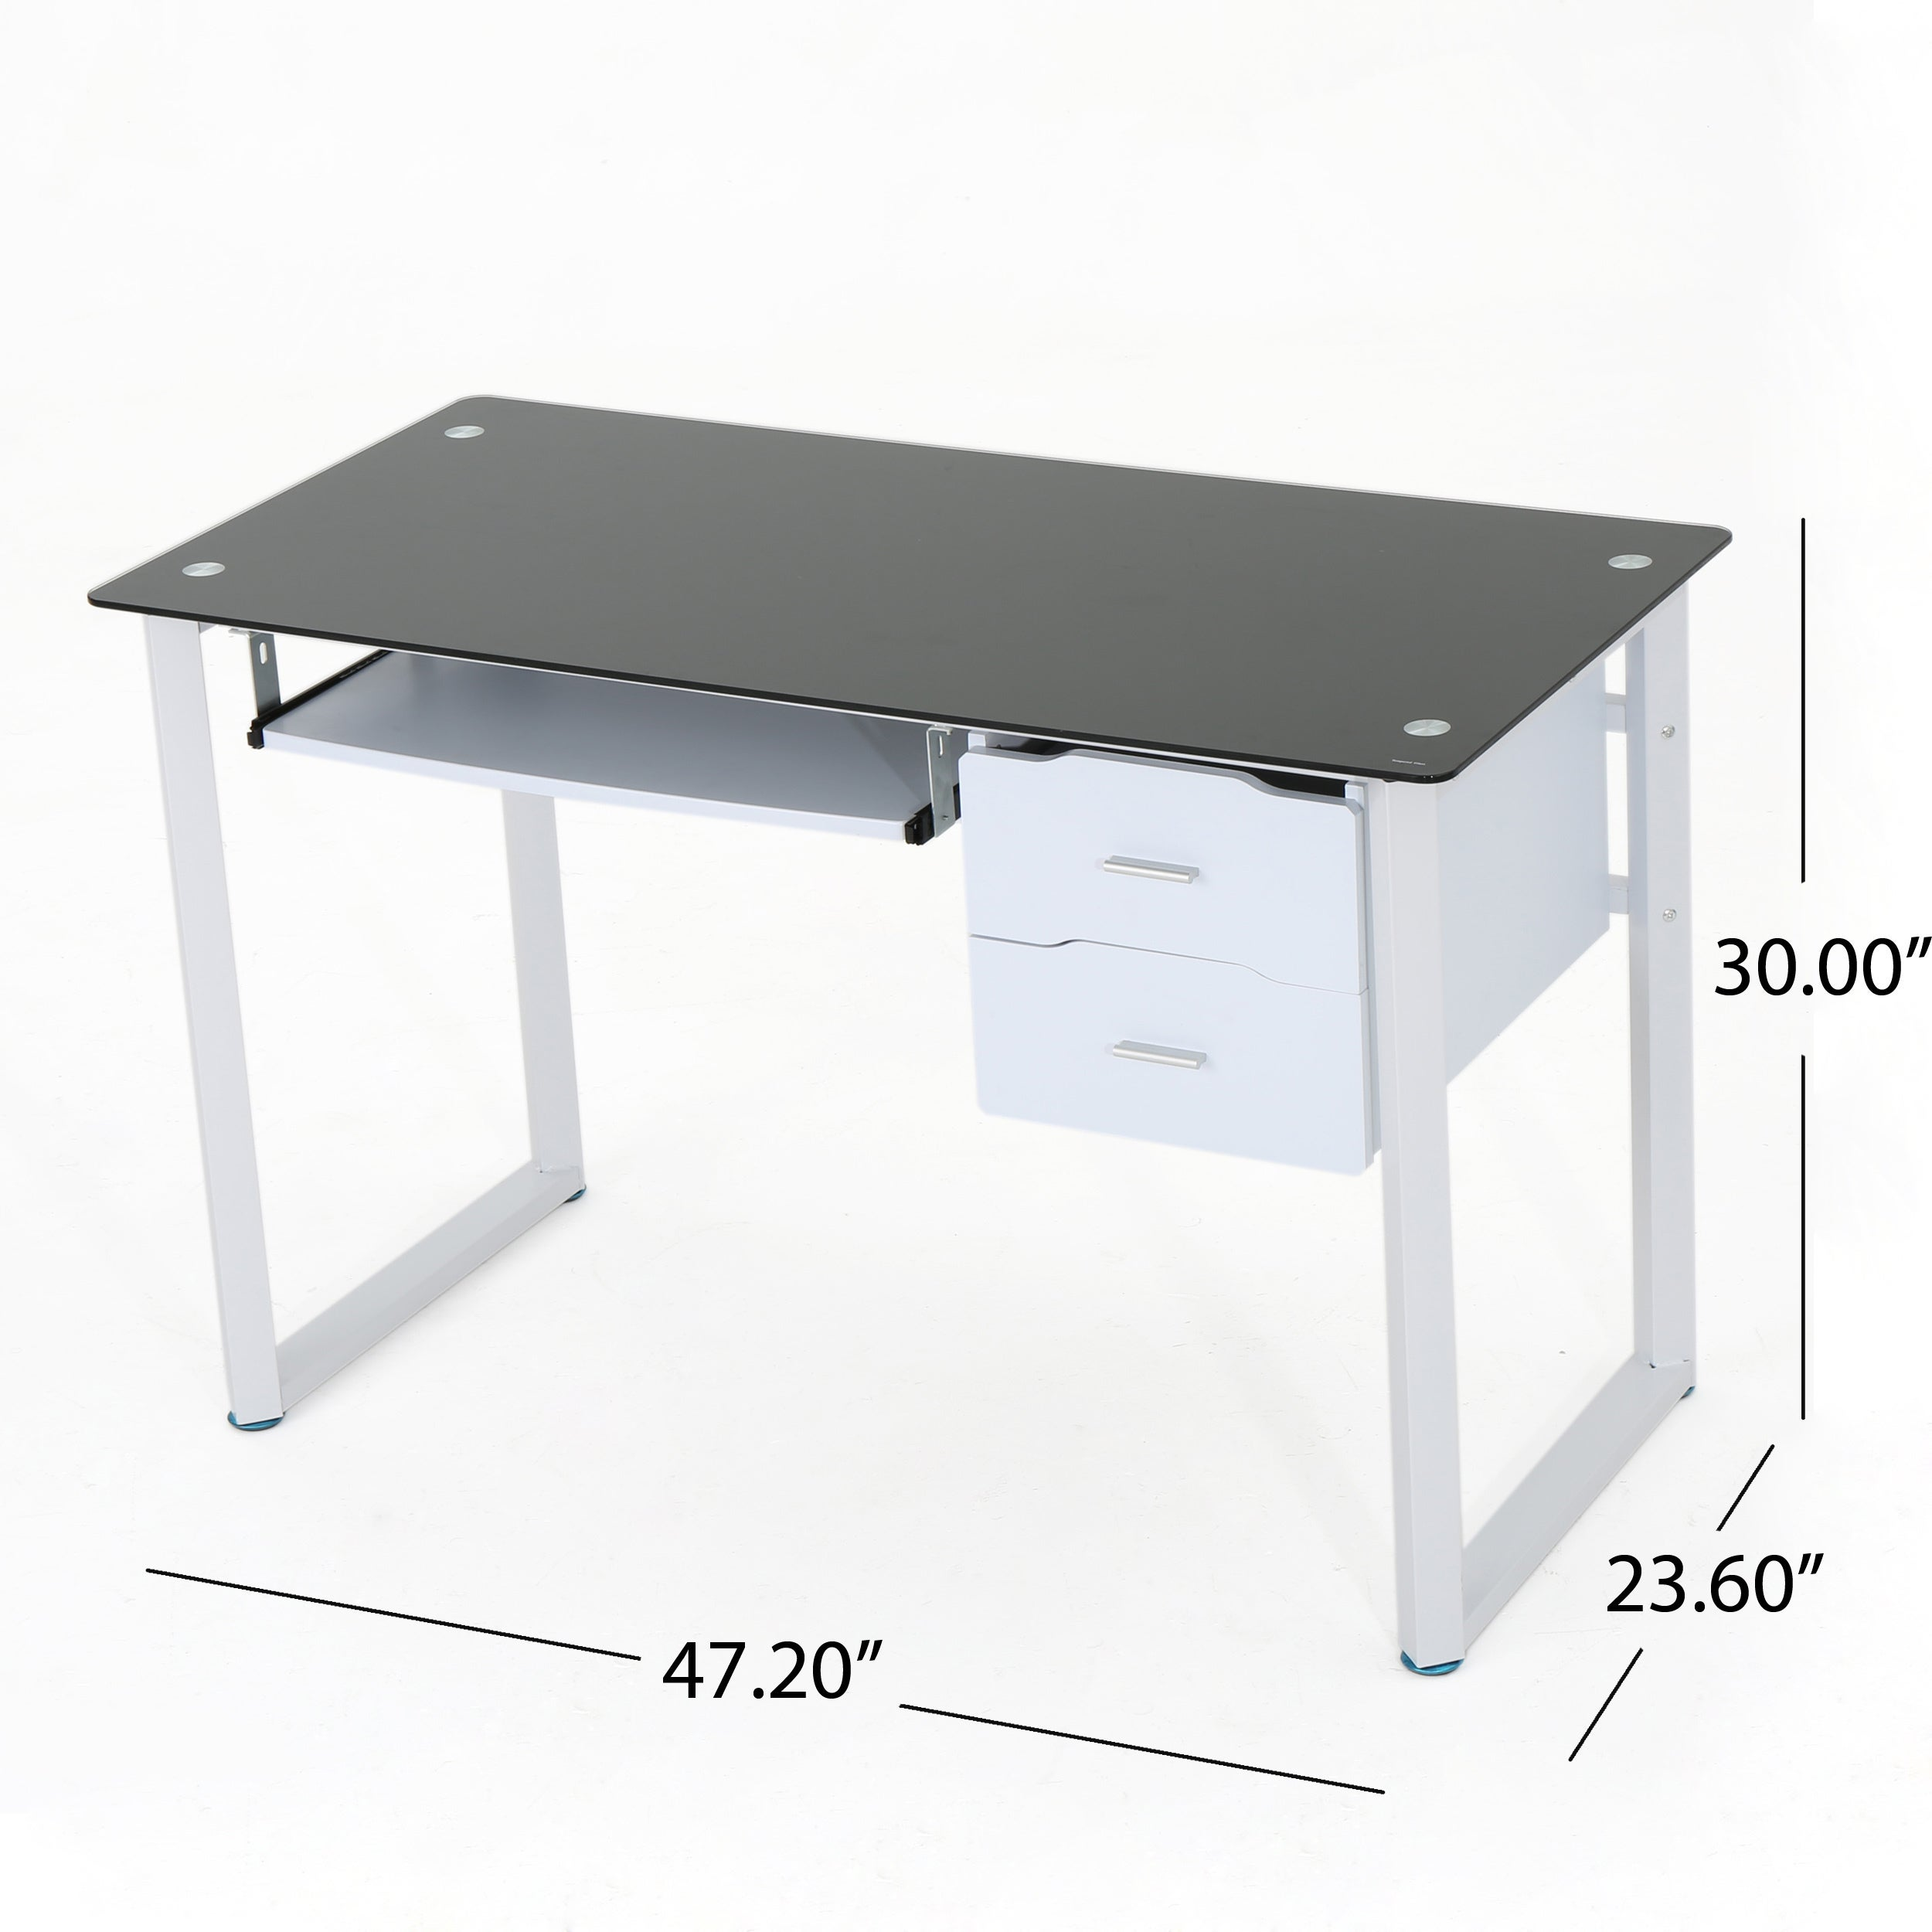 Shop reeve tempered glass computer desk with storage drawers by christopher knight home free shipping today overstock com 16032113